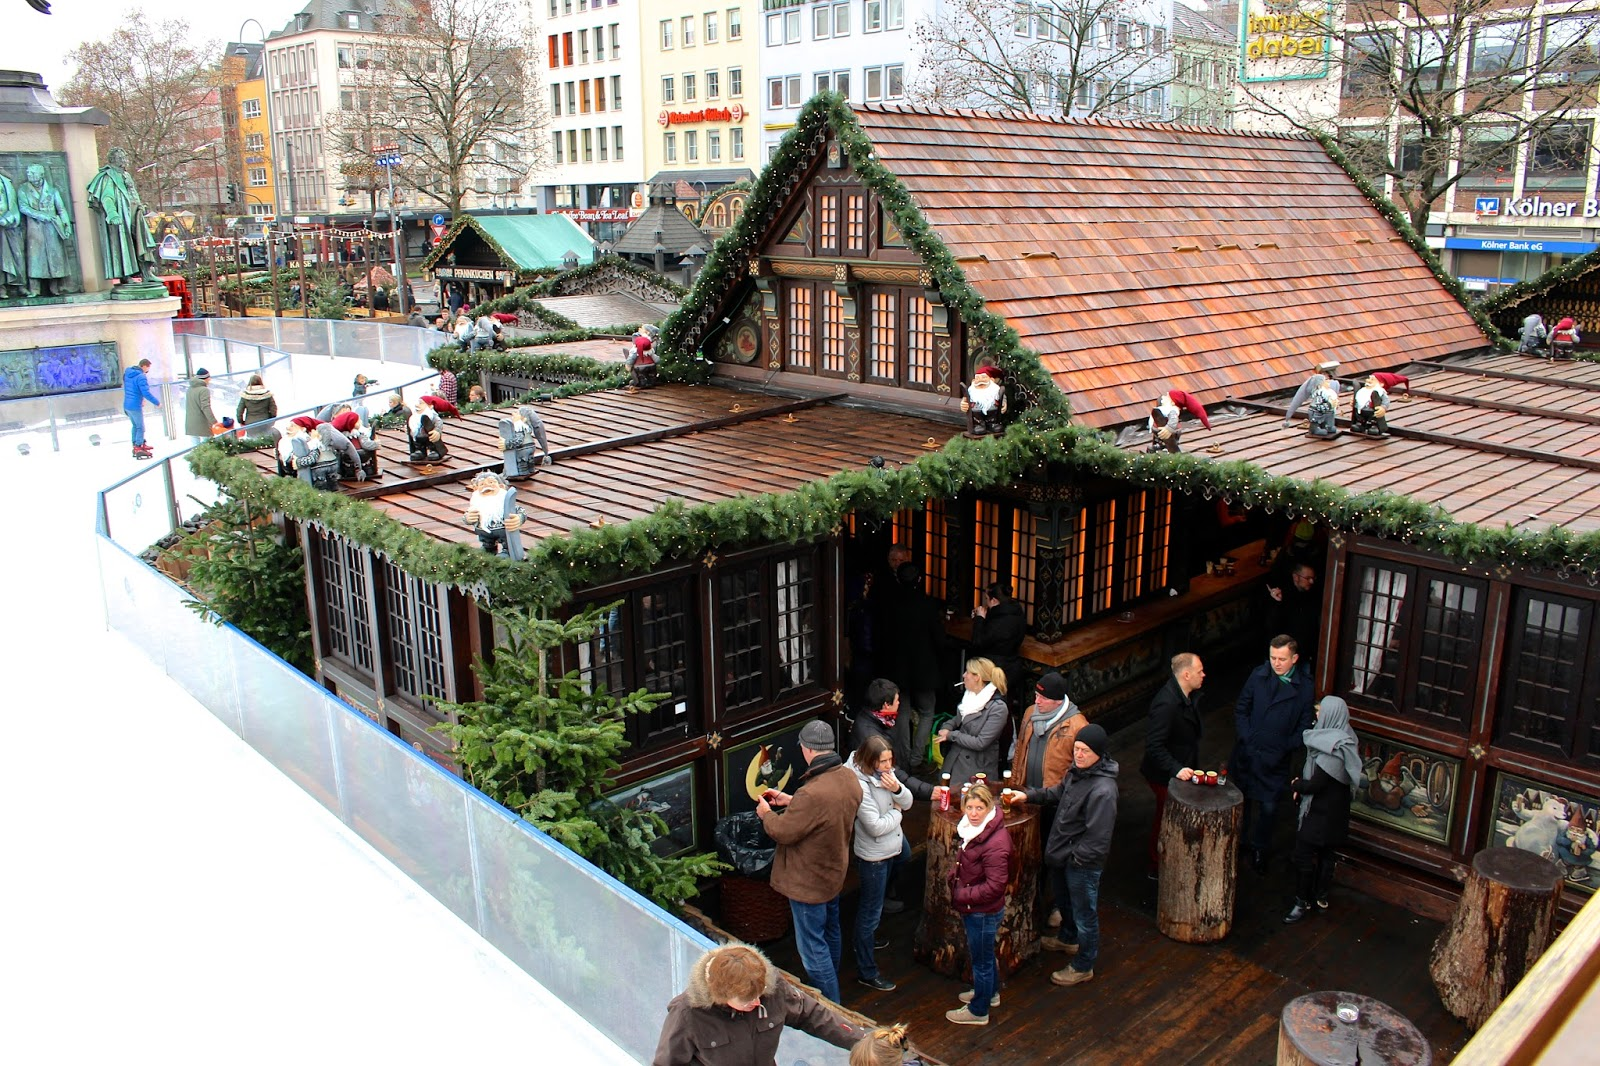 ice rink cologne market 2015